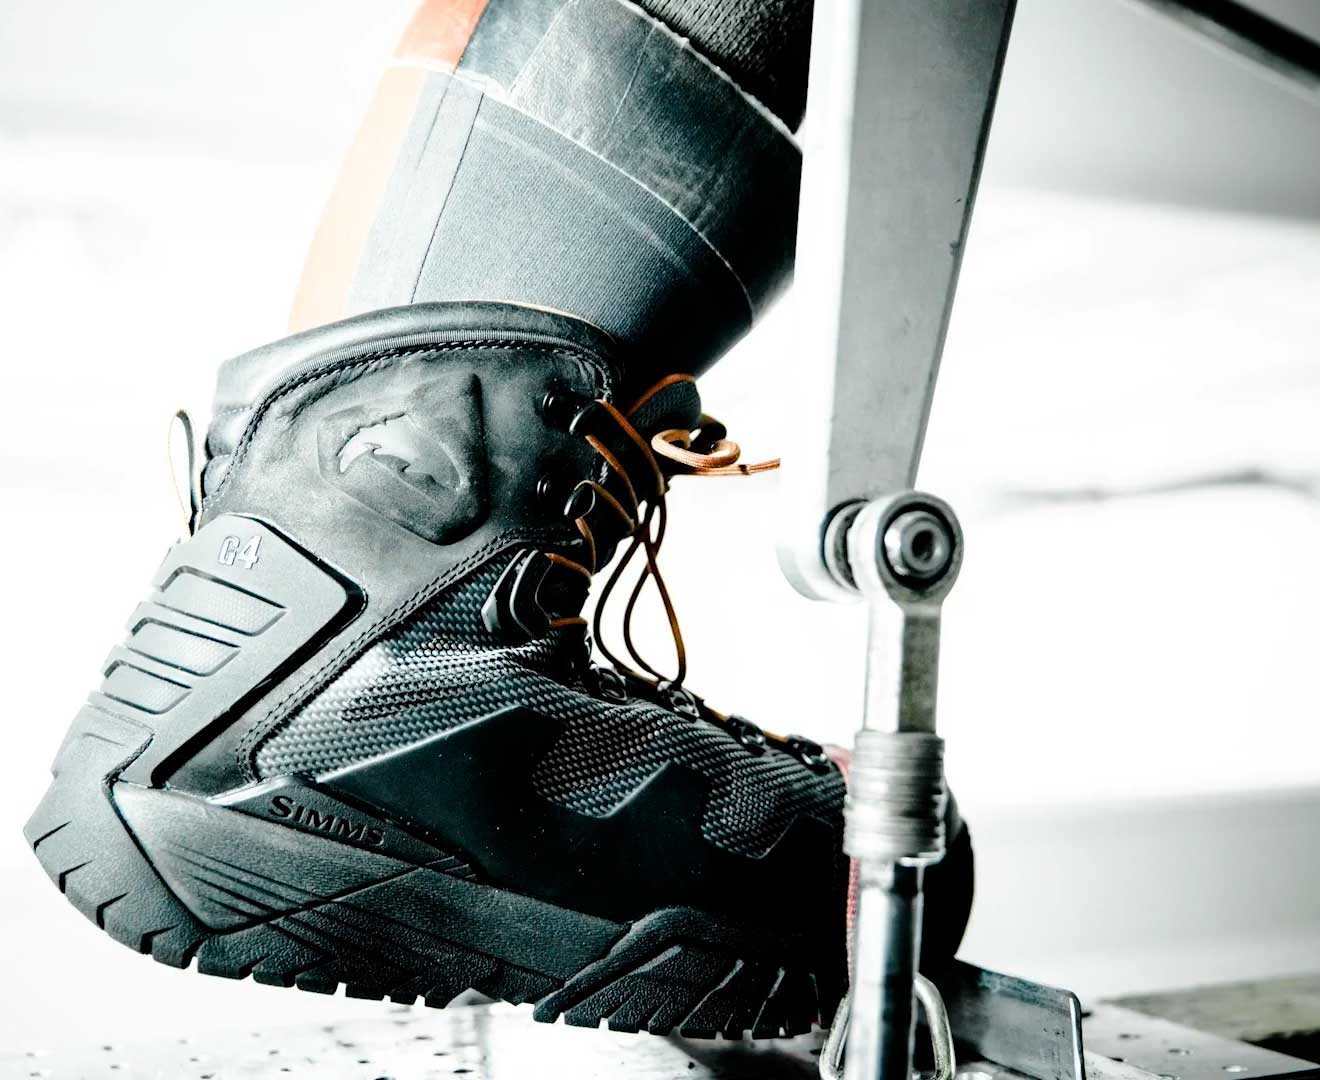 Simms-g4-Pro-Boots-2020